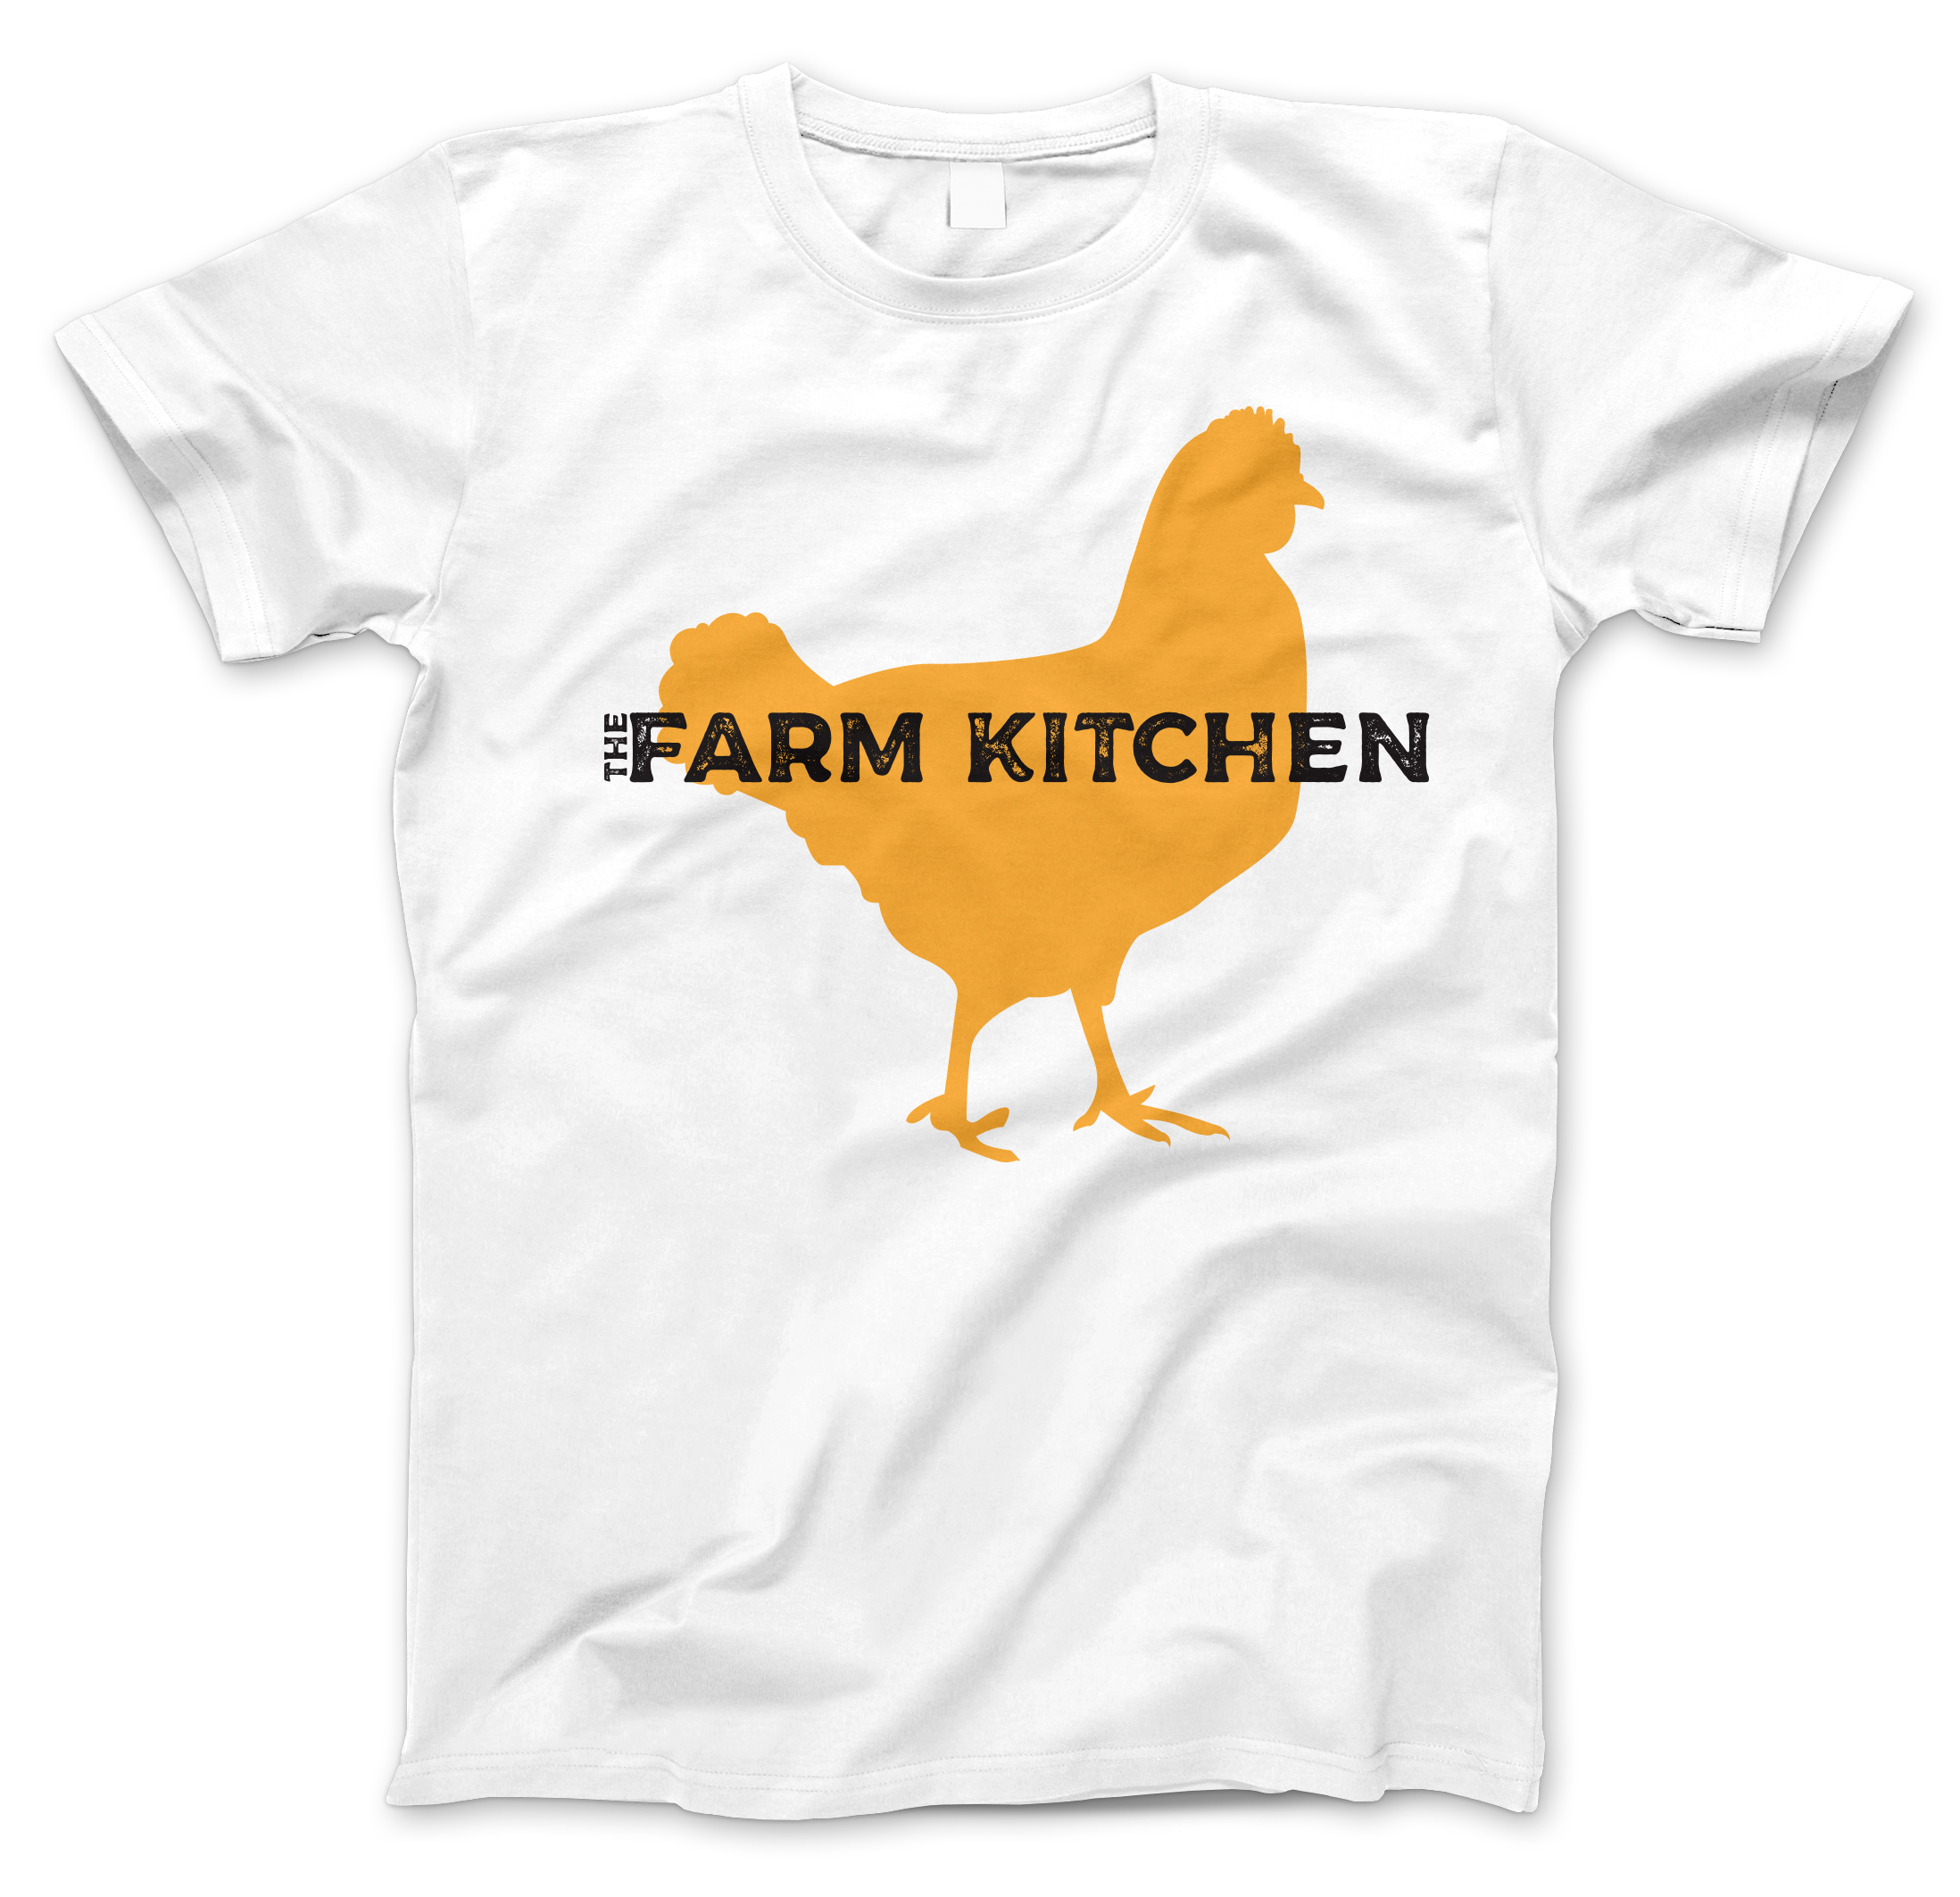 FarmKitchenTshirt3.jpg